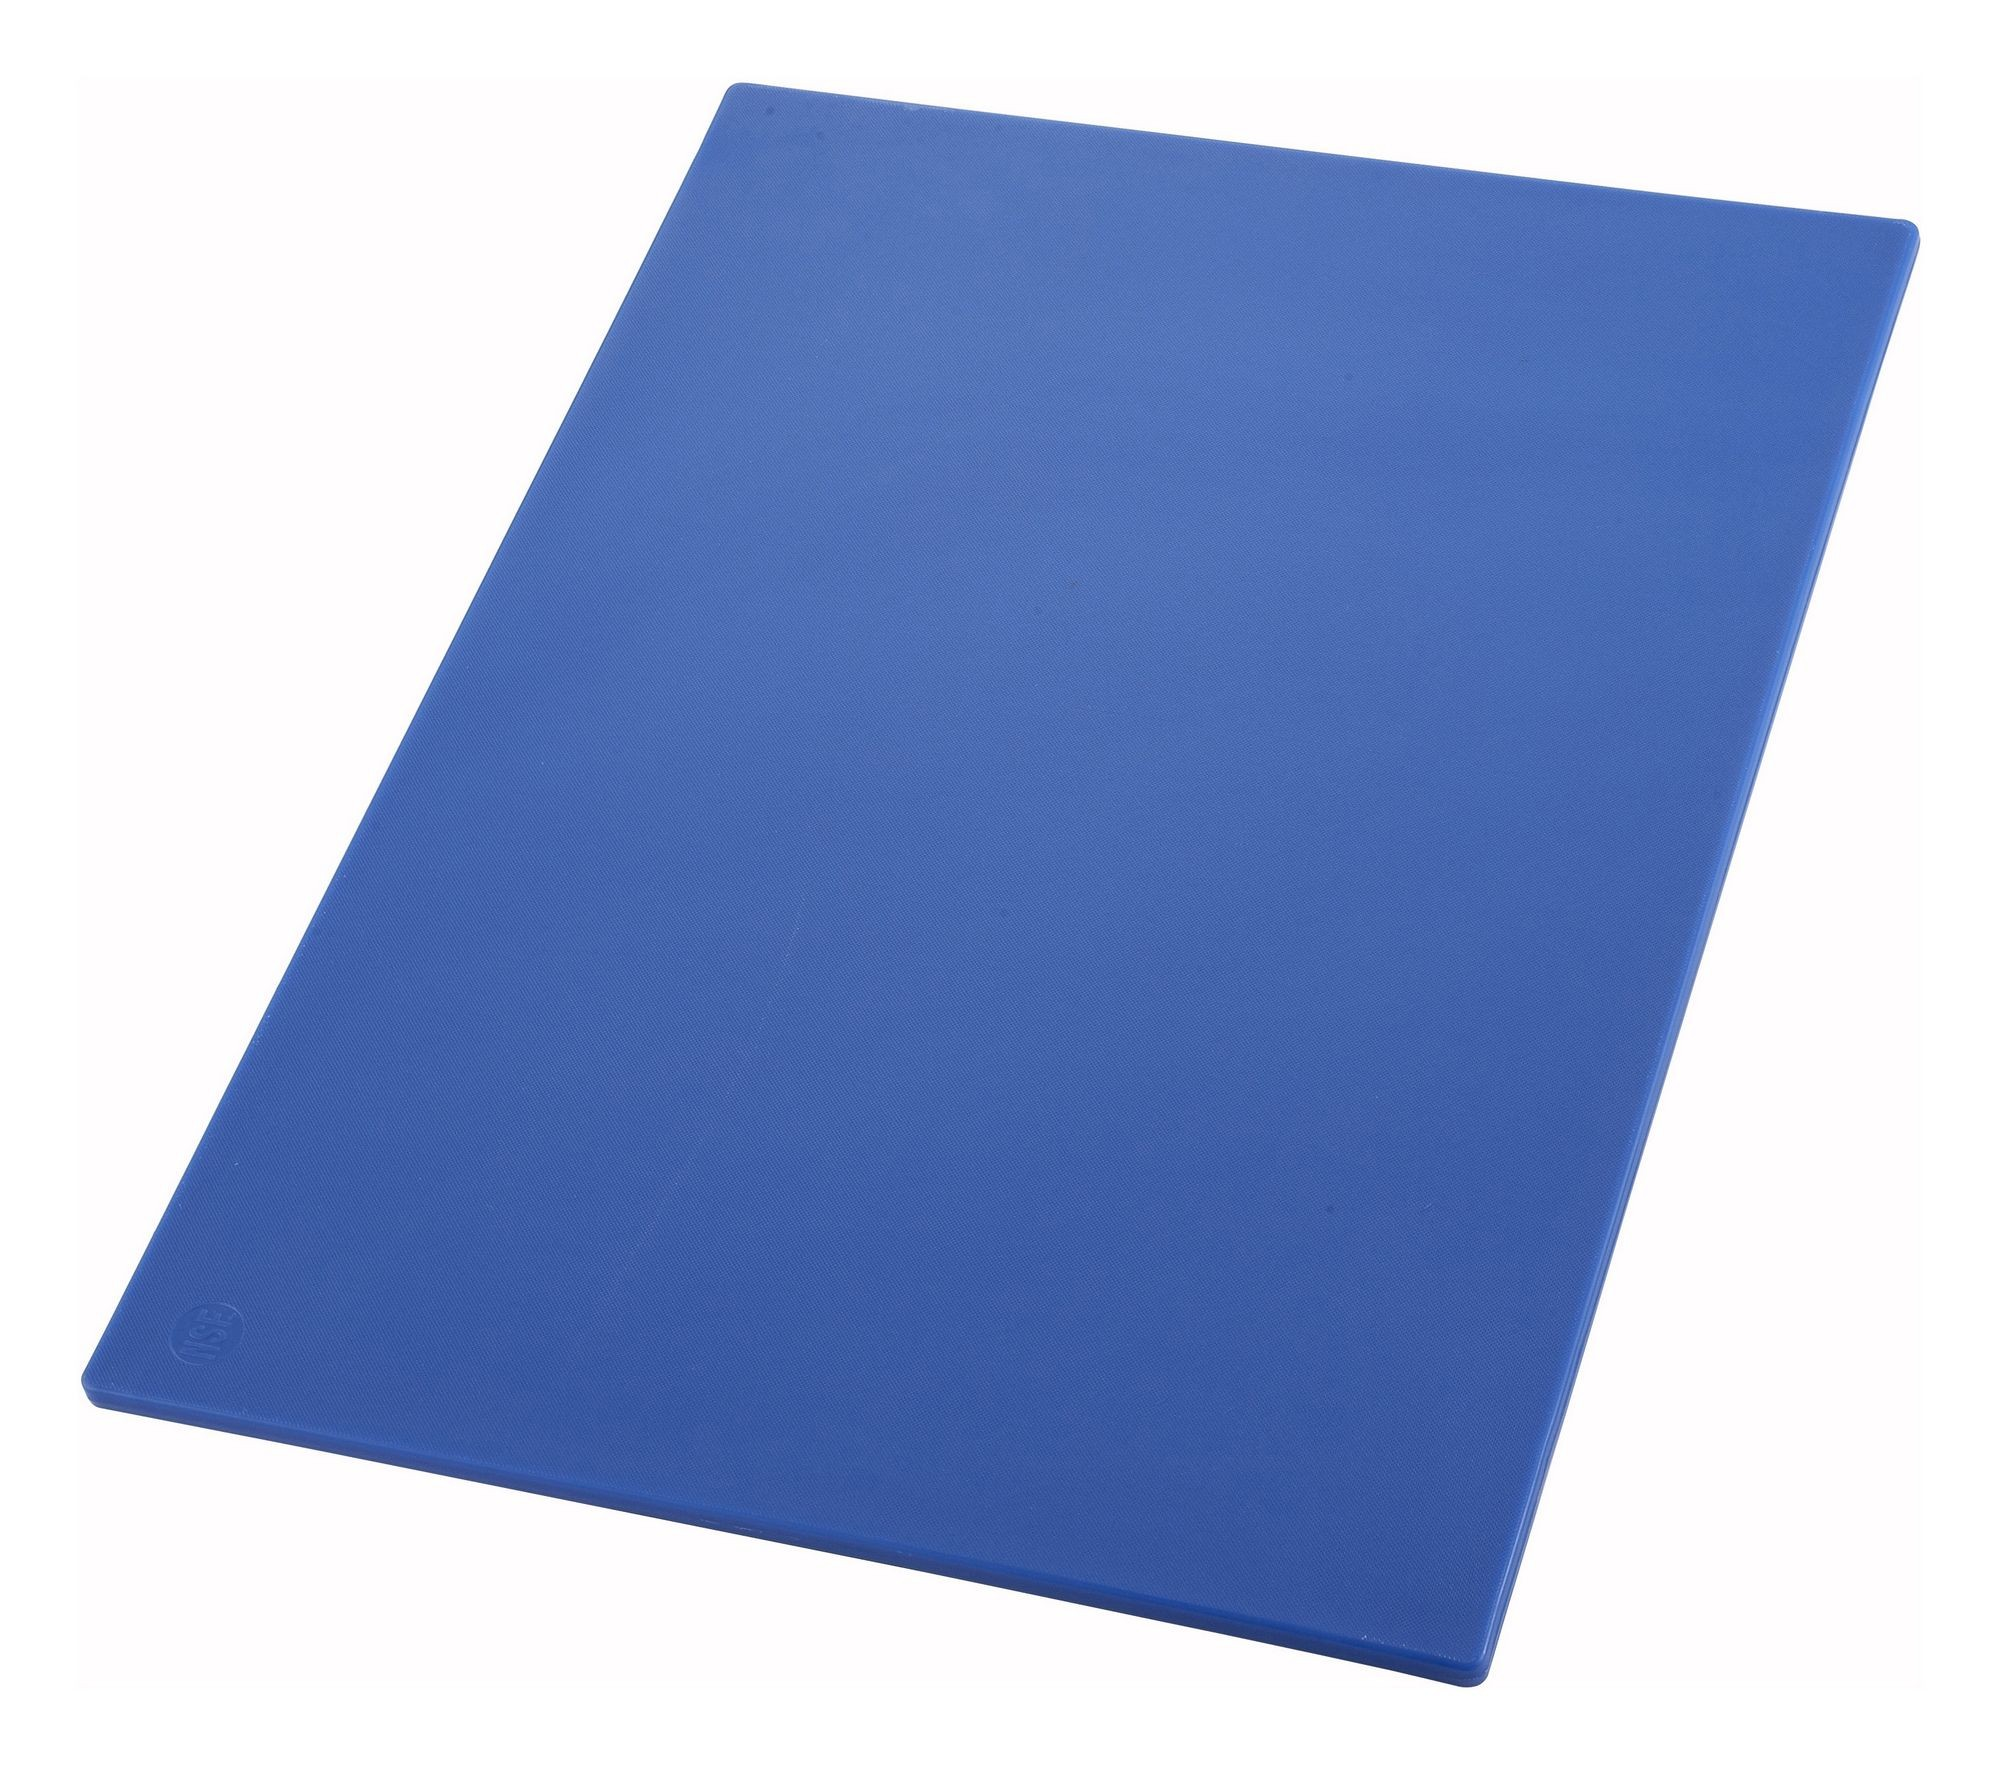 "Winco CBBU-1824 Blue Plastic Cutting Board 18"" x 24"" x 1/2"""